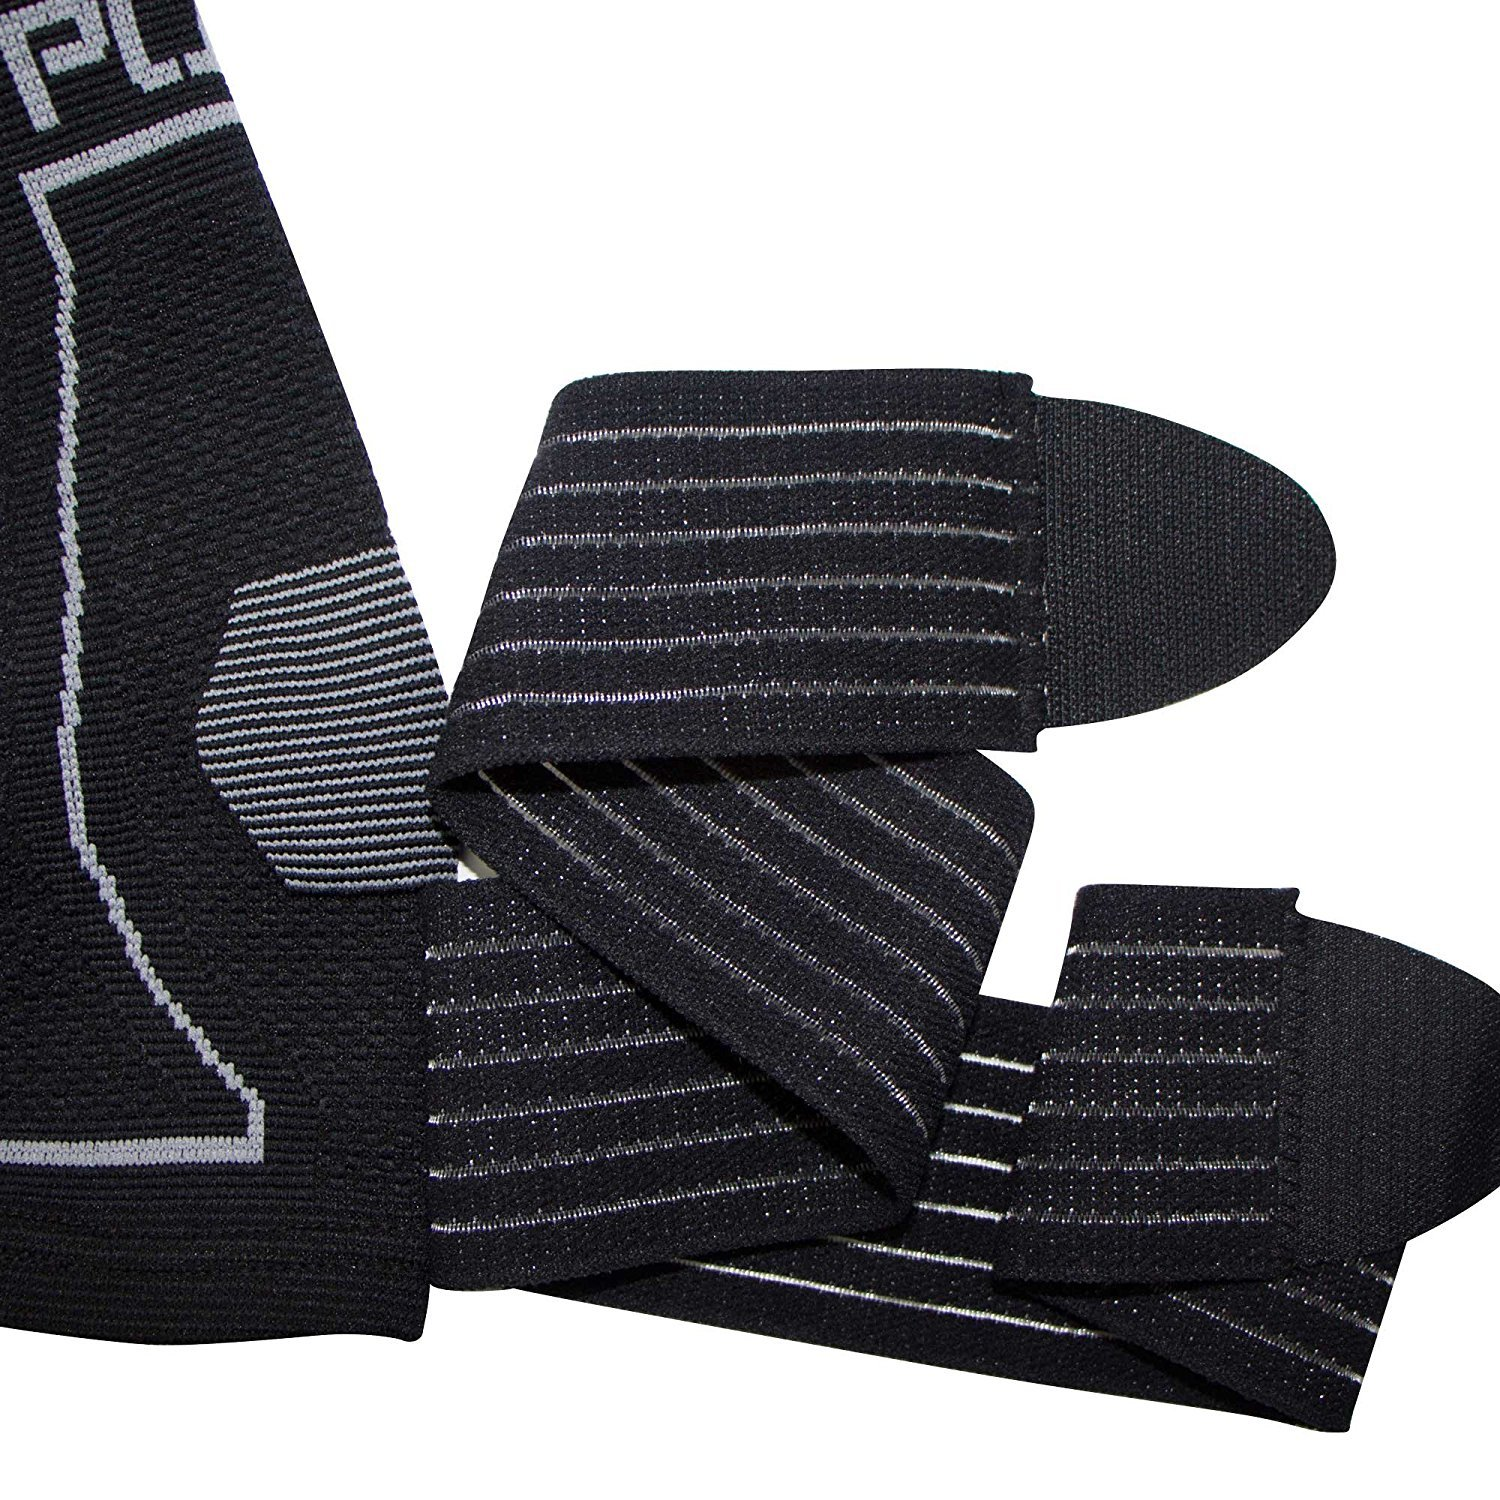 Ankle Support Brace - Compression Sleeve with Adjustable Strap, Great for Running, Ankle Sprains (L/XL, Black - 1 Pair (Two Sleeves)) by Pure Compression (Image #2)